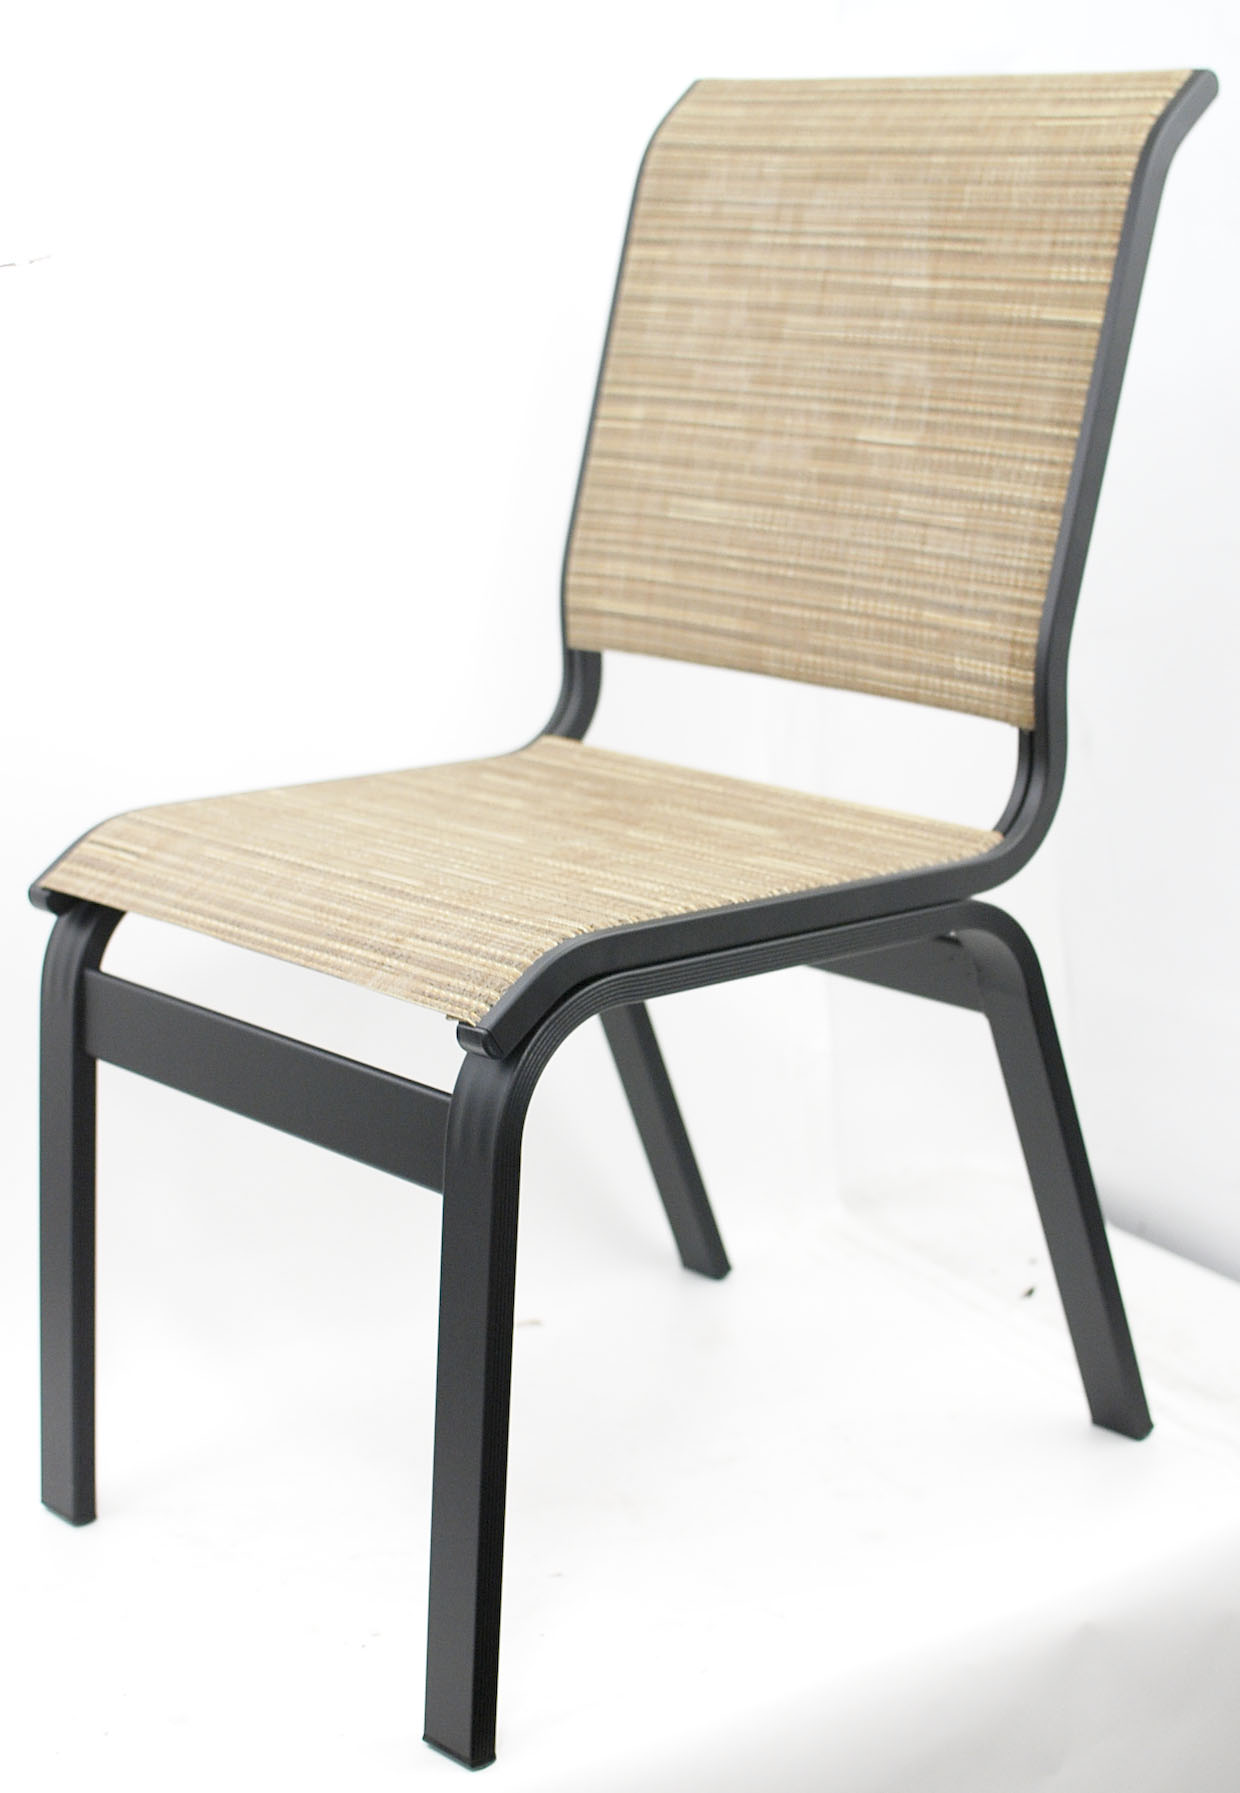 Details About Telescope Casual Aruba Ii Sling Collection Dining Height Aluminum Armless Chair